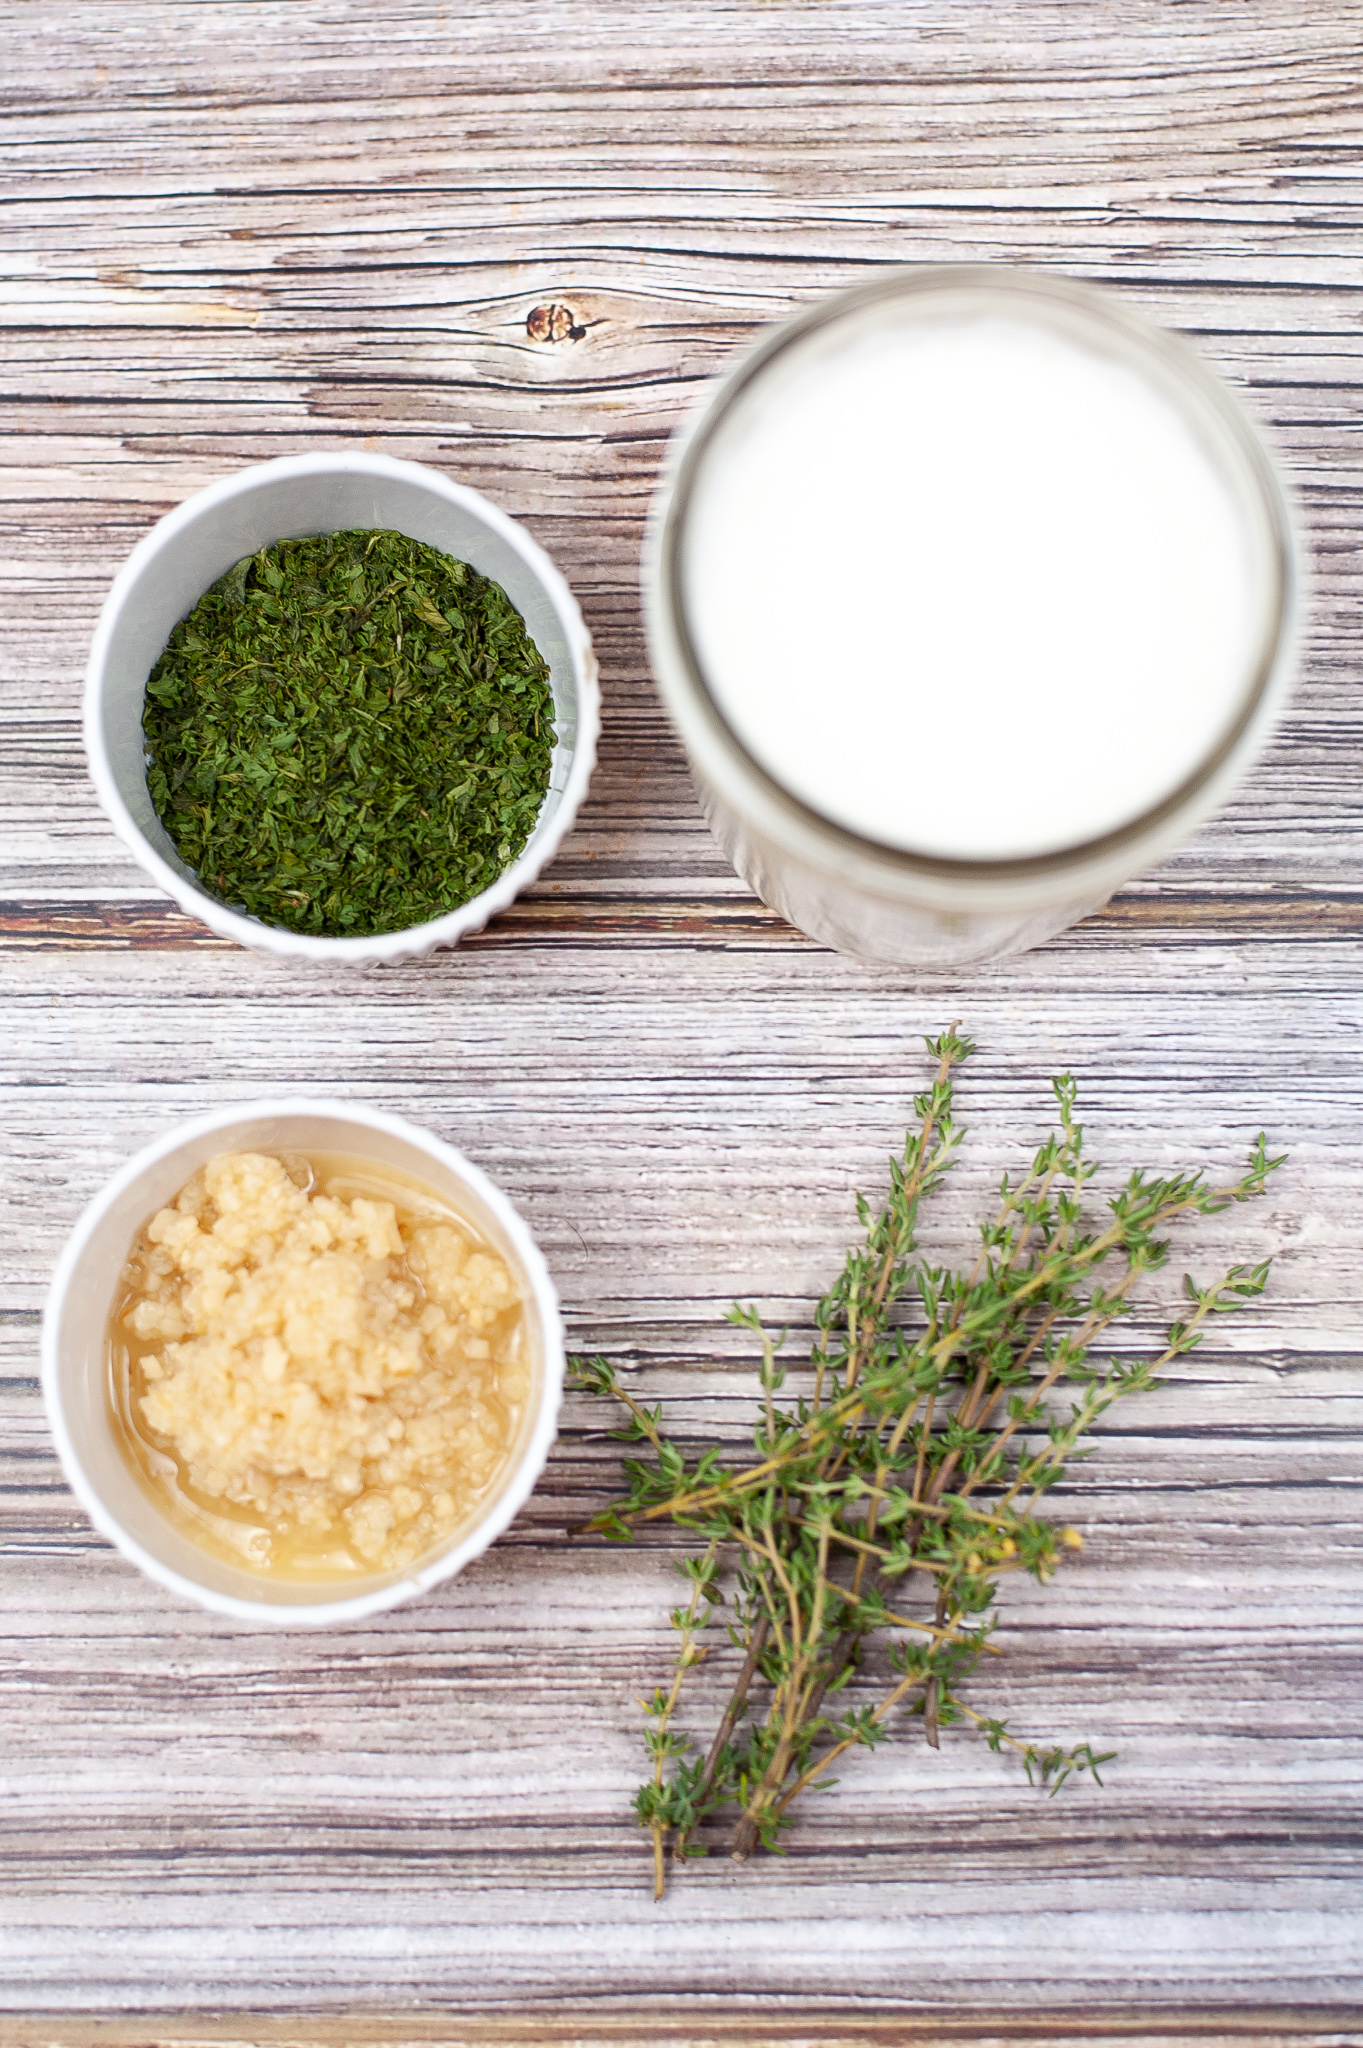 Milk and herbs to create butter.